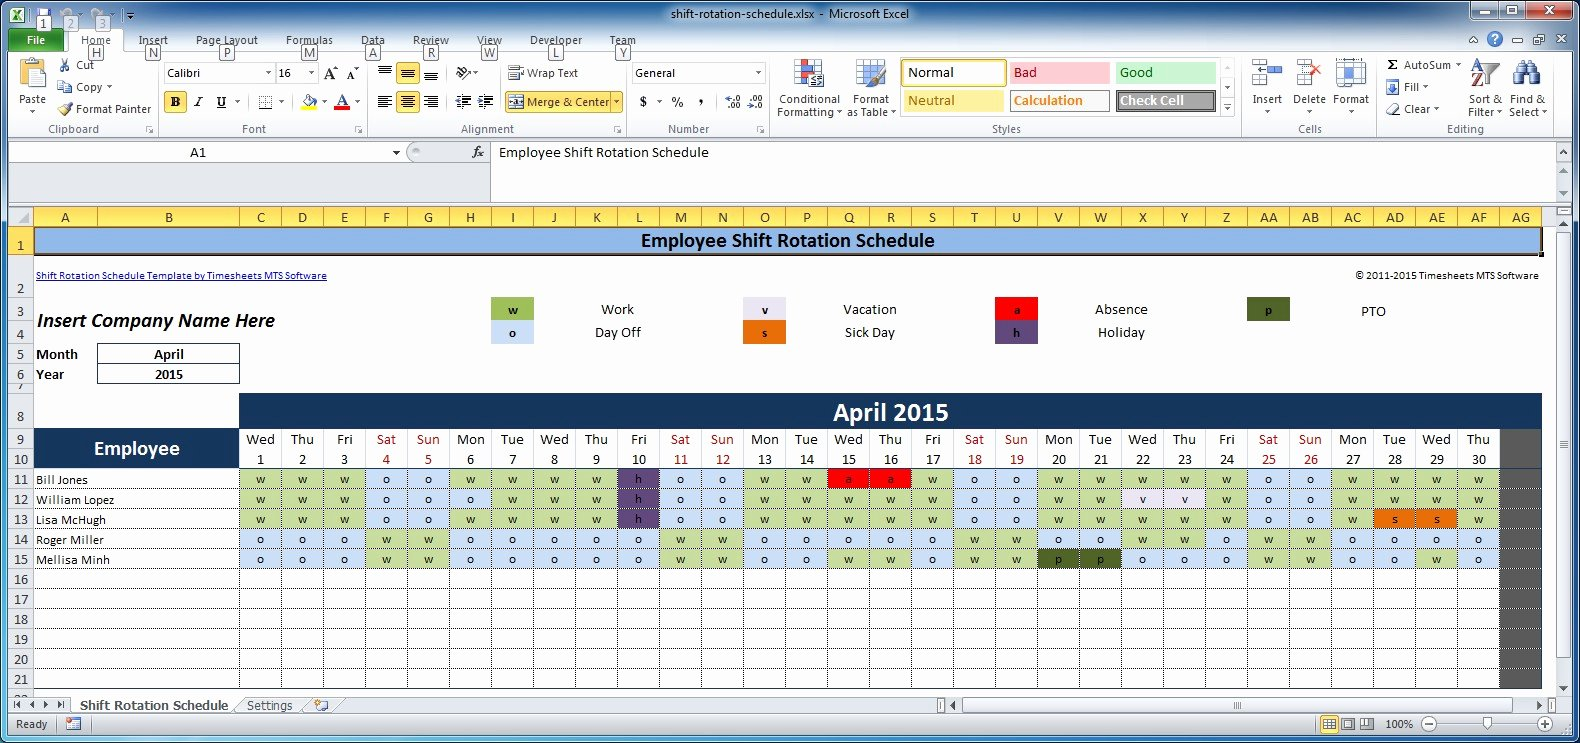 Employee Schedule Template Free Unique Free Employee and Shift Schedule Templates